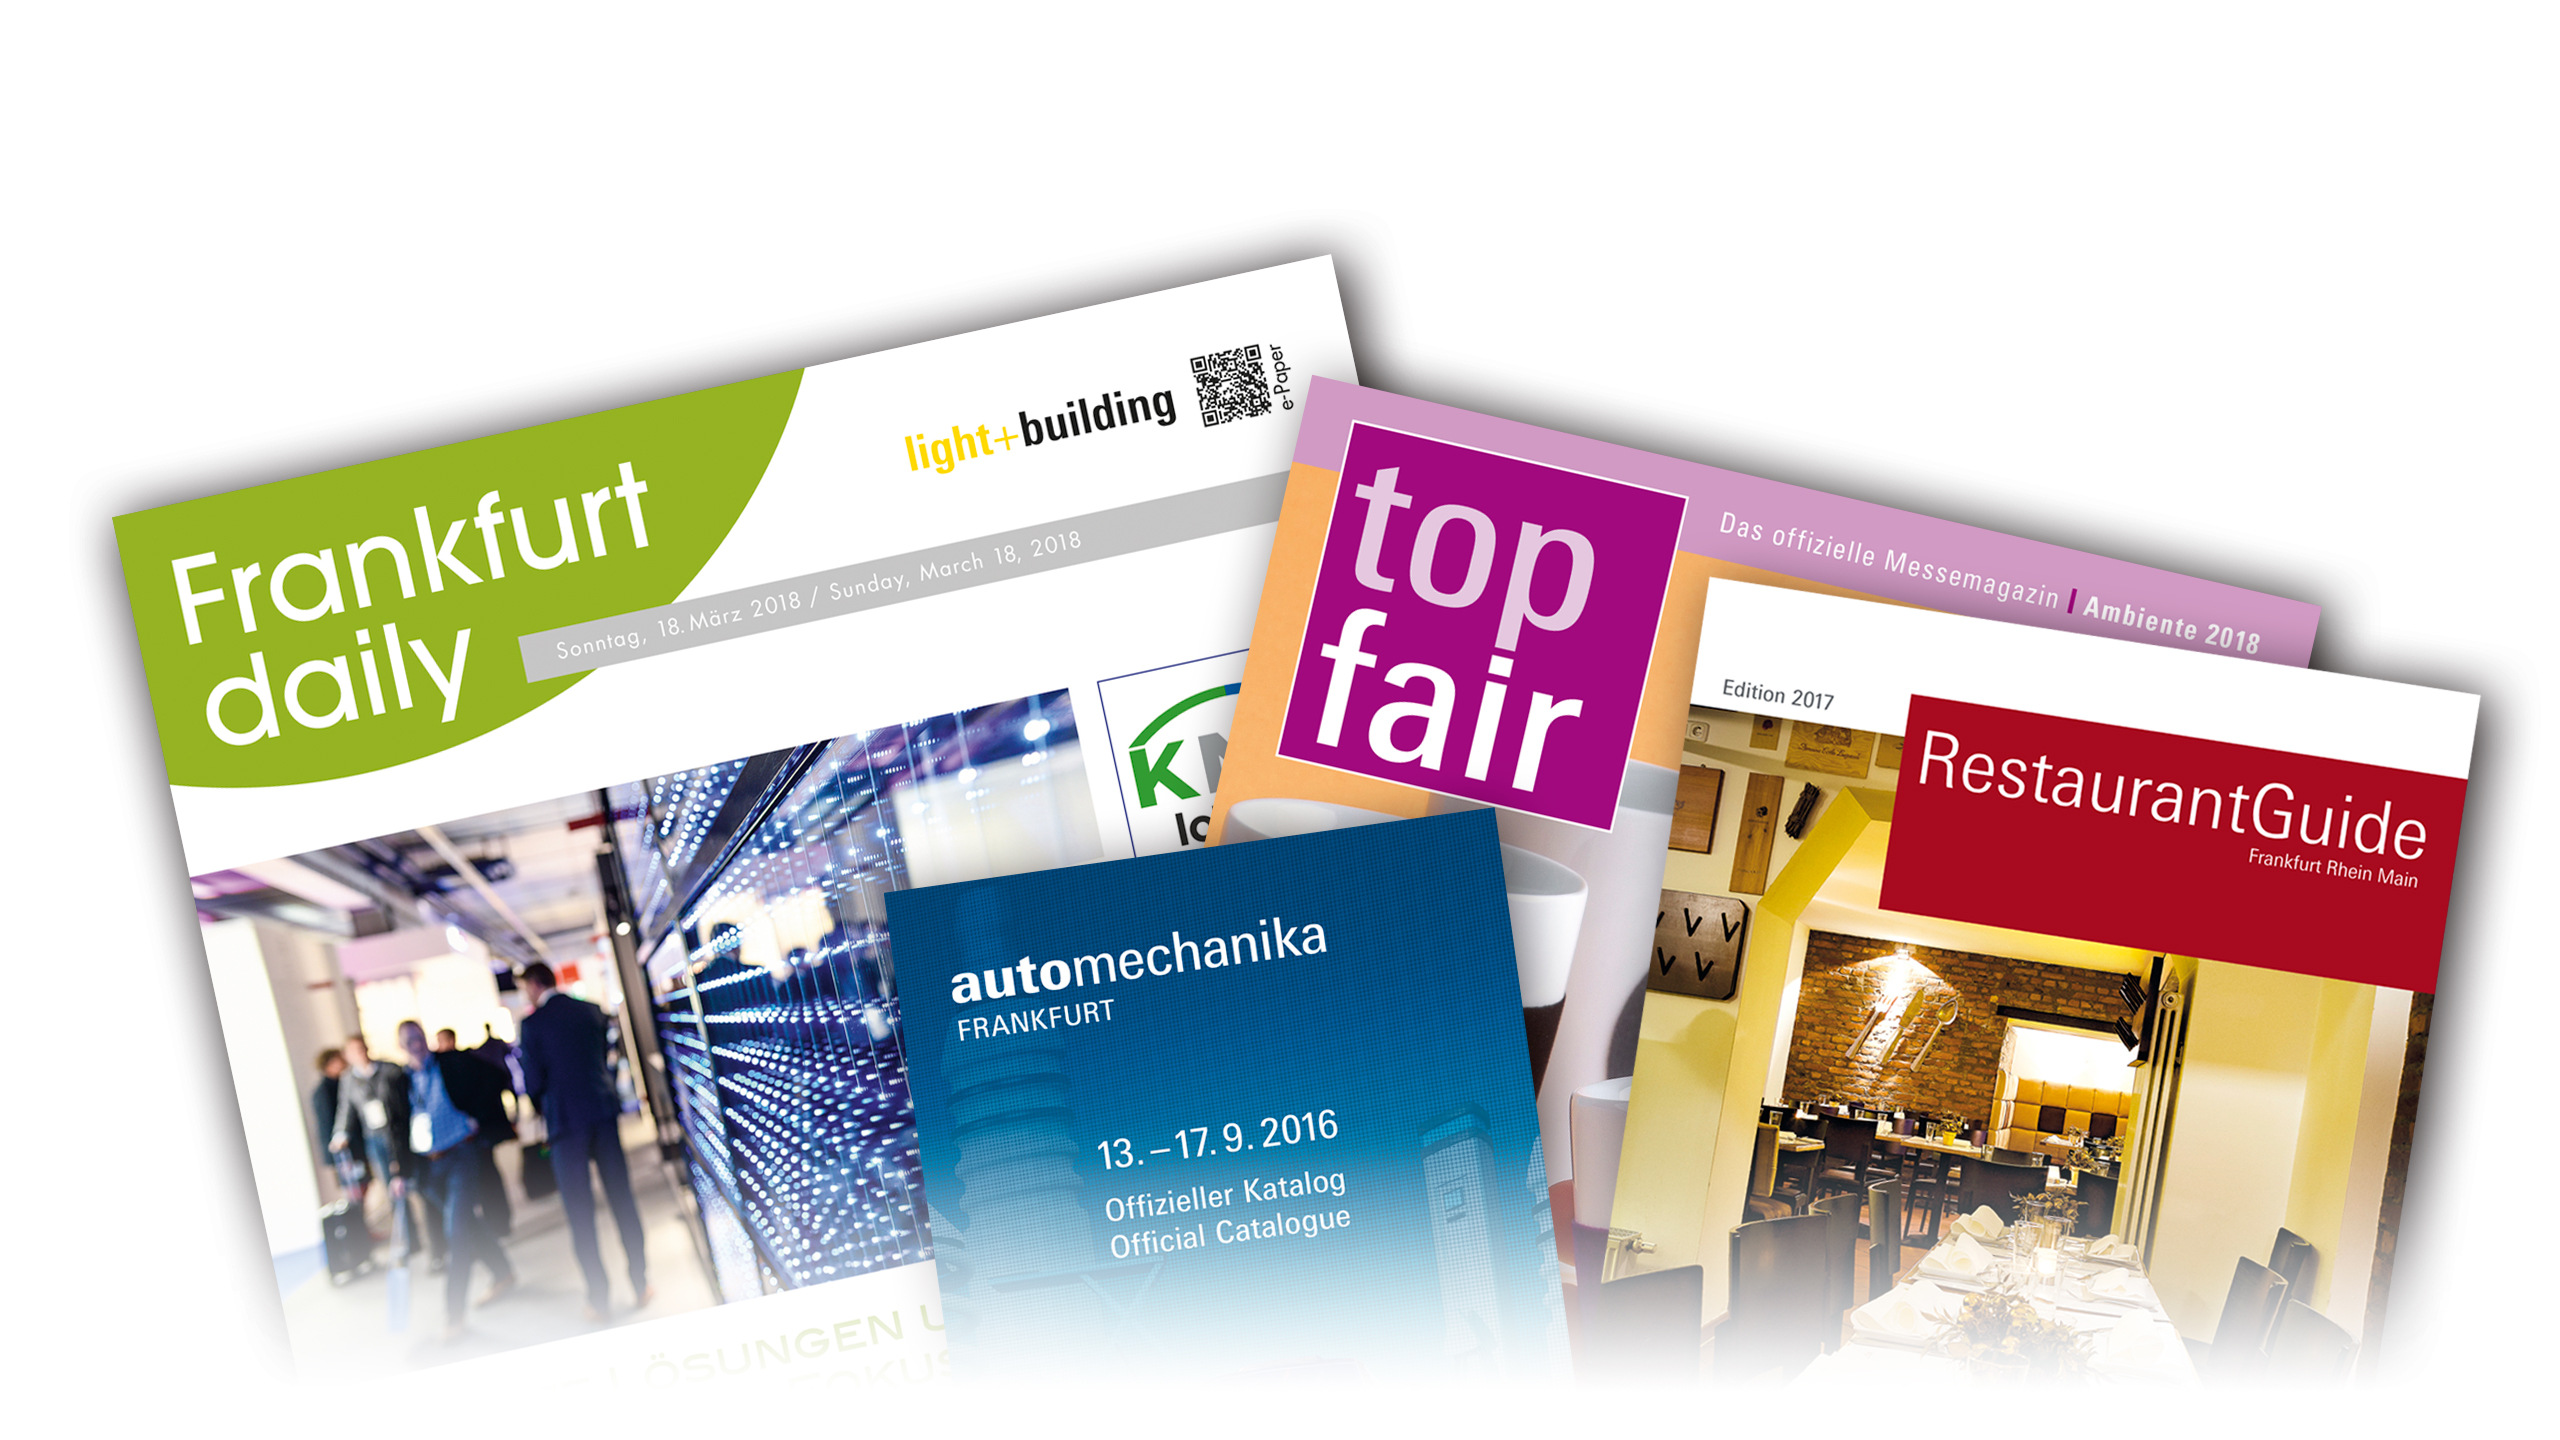 Publications from the Messe Frankfurt publishing department